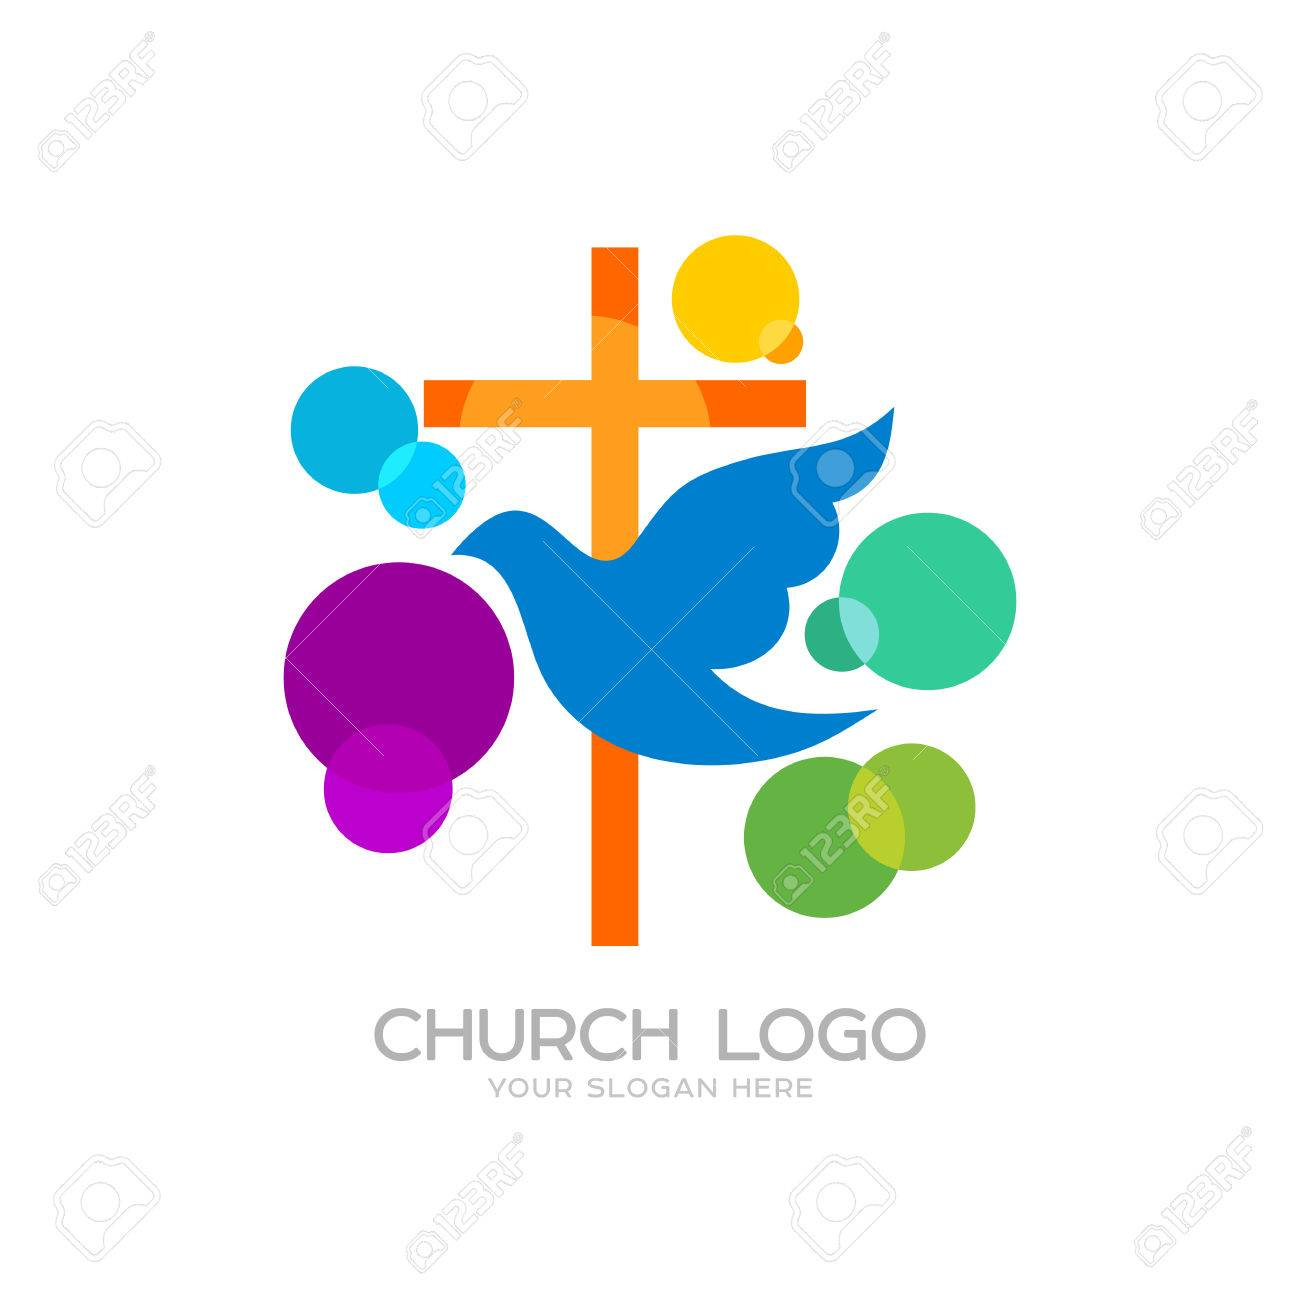 Church logo cristian symbols the cross of jesus and the dove church logo cristian symbols the cross of jesus and the dove colored circles altavistaventures Choice Image